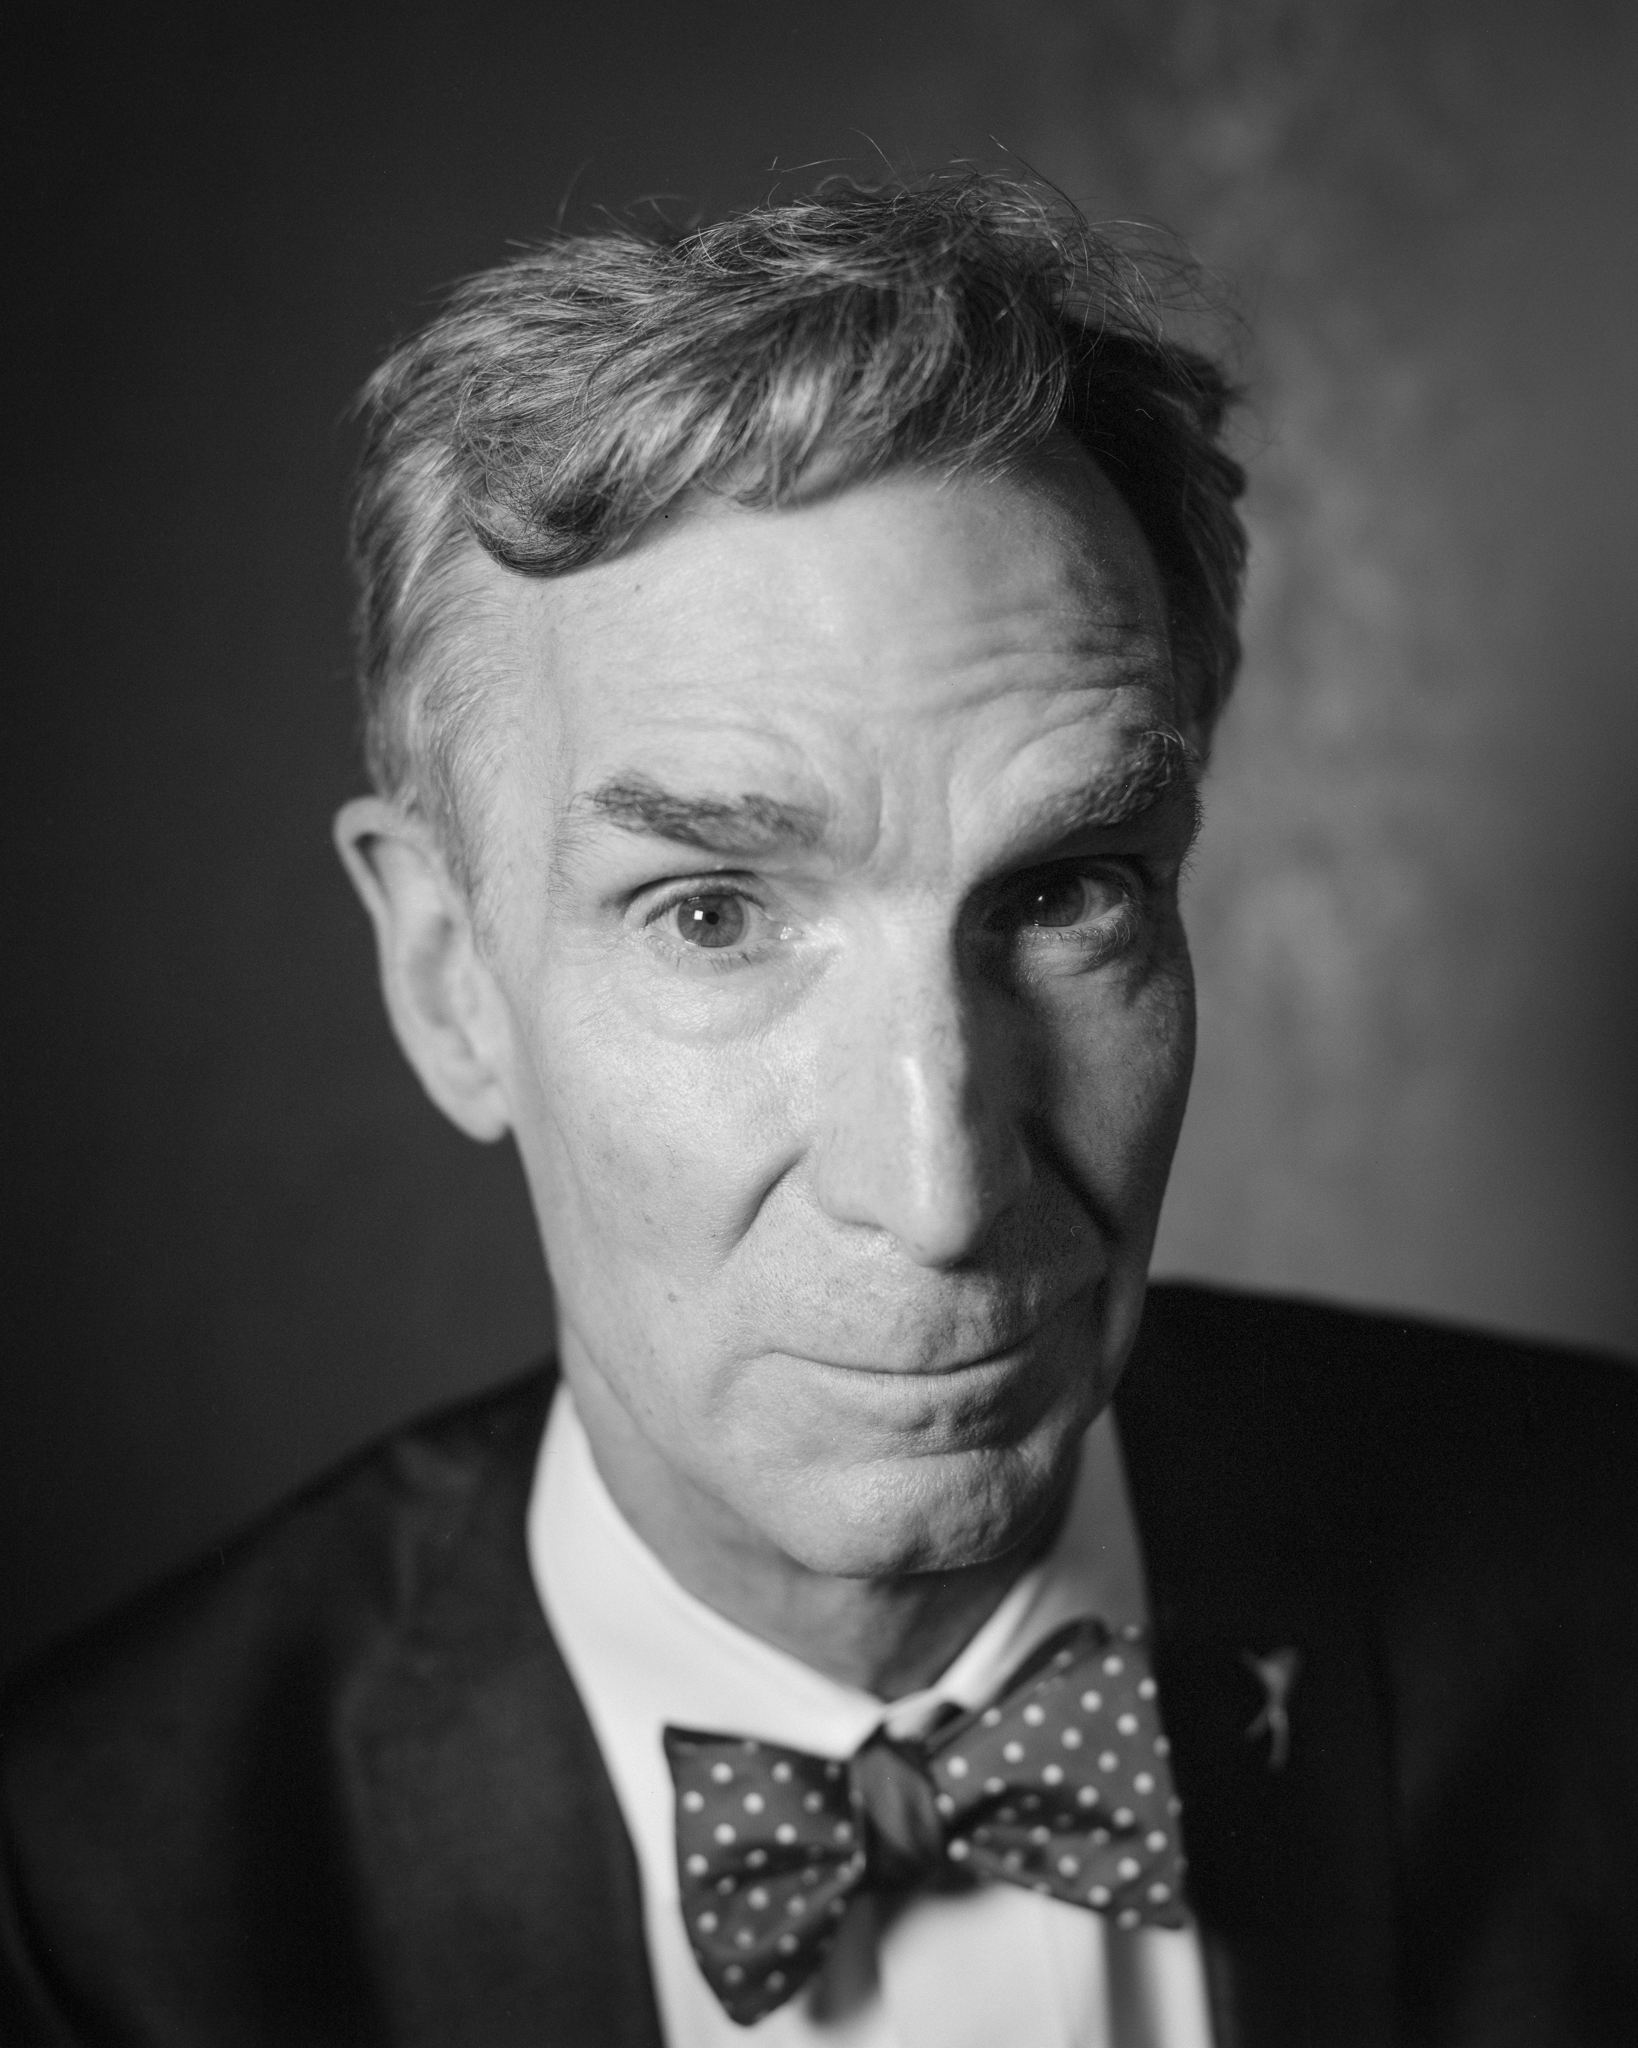 Bill Nye, a few minutes before taking the stage at the Castro Theater on September 10, 2017 ©Ian Tuttle 2017